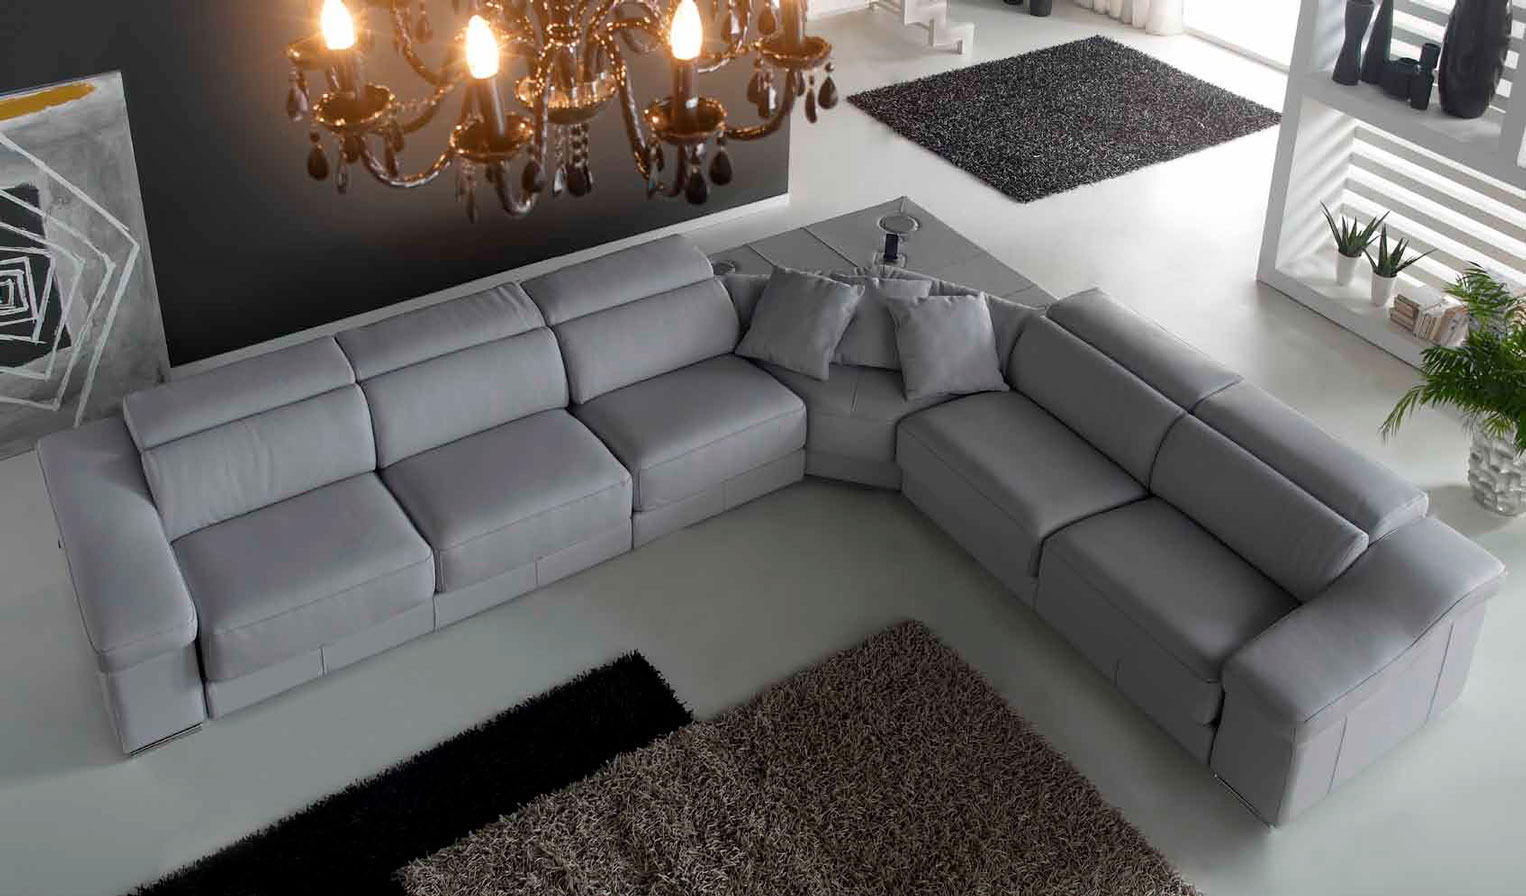 Sof rinconera ecla muebles d azmuebles d az for Sofas y sillones a juego